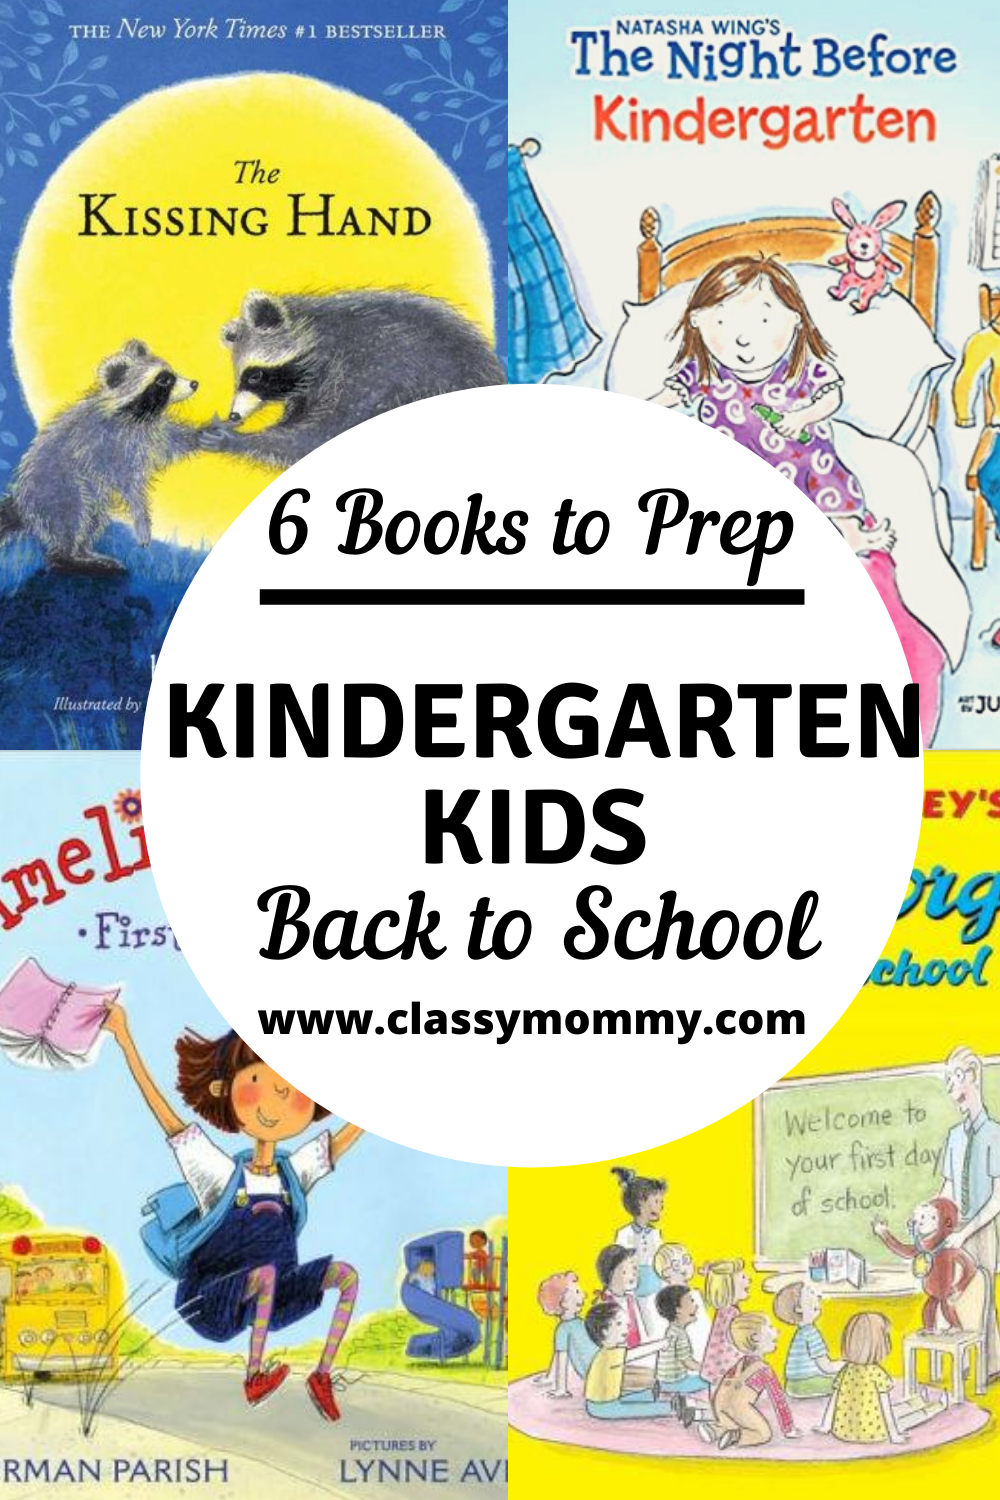 6 Books to Read before the First Day of Kindergarten